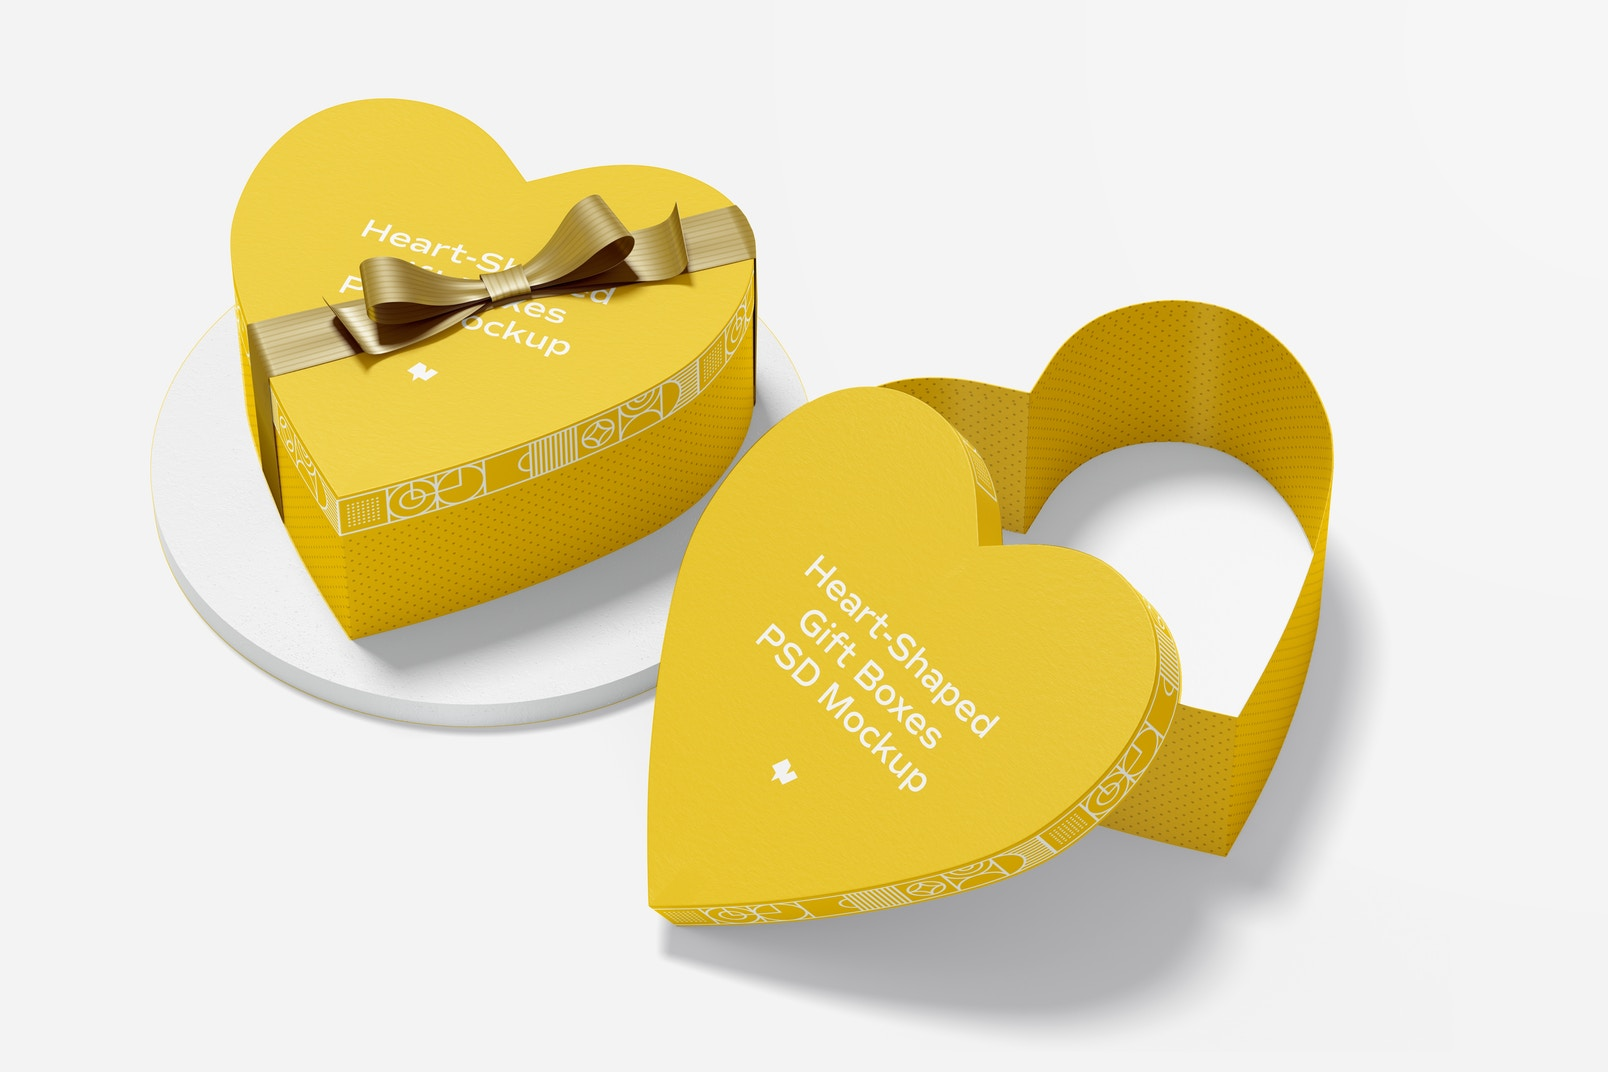 Heart-Shaped Gift Boxes With Paper Ribbon Mockup, Opened and Closed